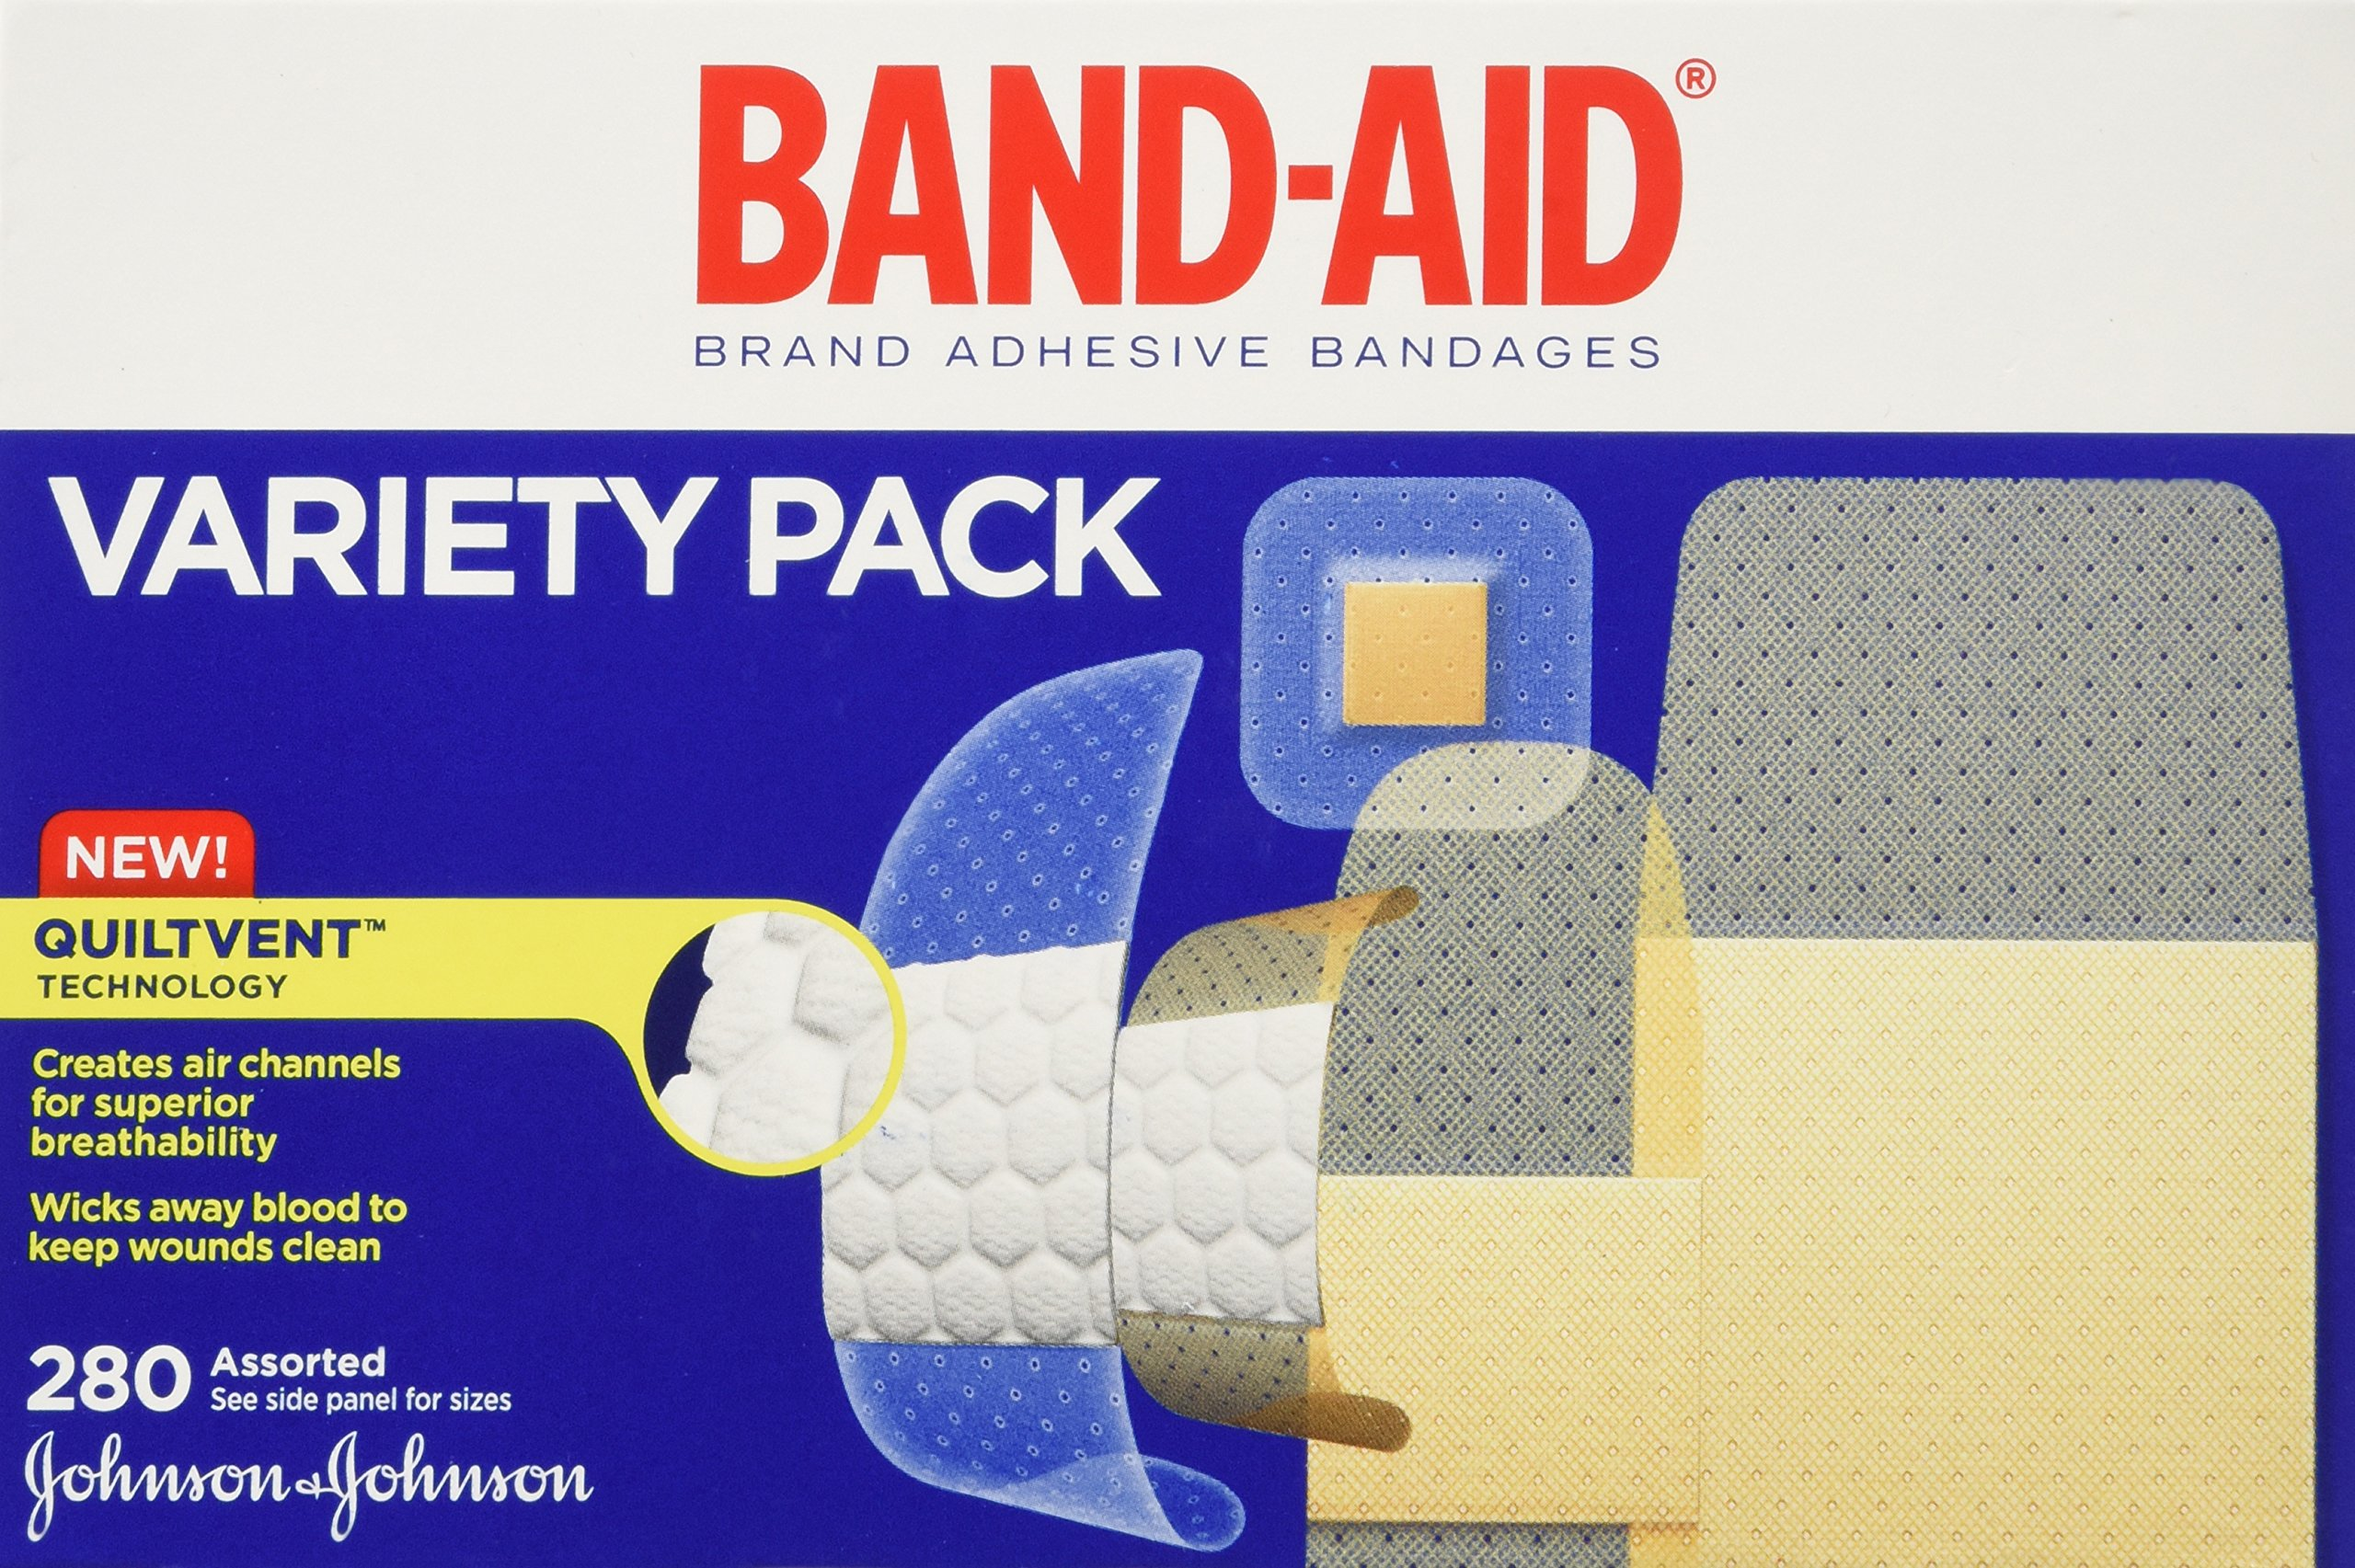 Band-Aid Brand Adhesive Bandages, Variety Pack, 280-Count Assorted Sizes (Pack of 2) by Band-Aid